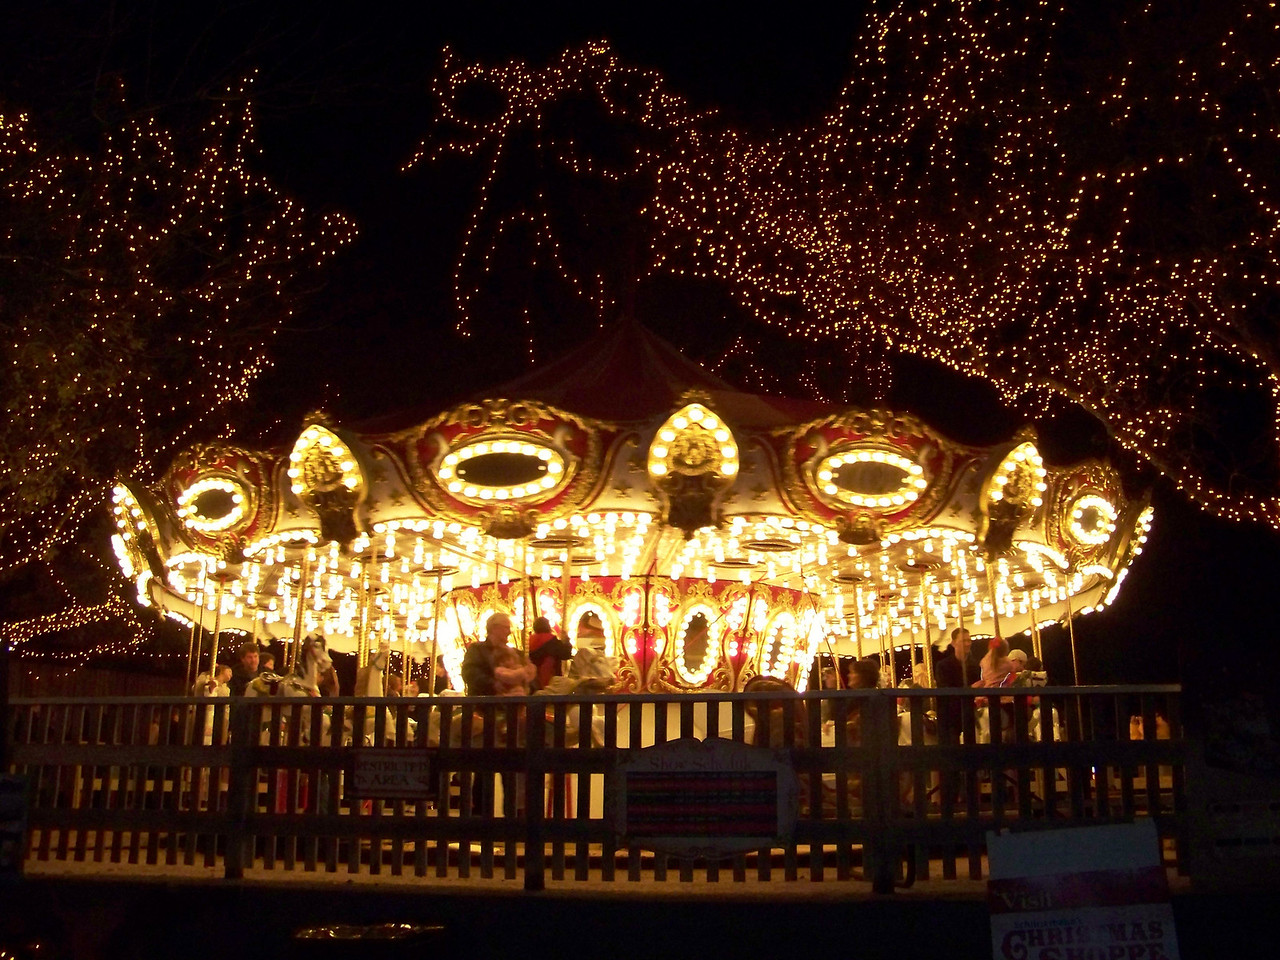 They had a few kiddie rides operating, including this lovely carousel.<br /> [Schlitterbahn's Hill Country Christmas 2009]